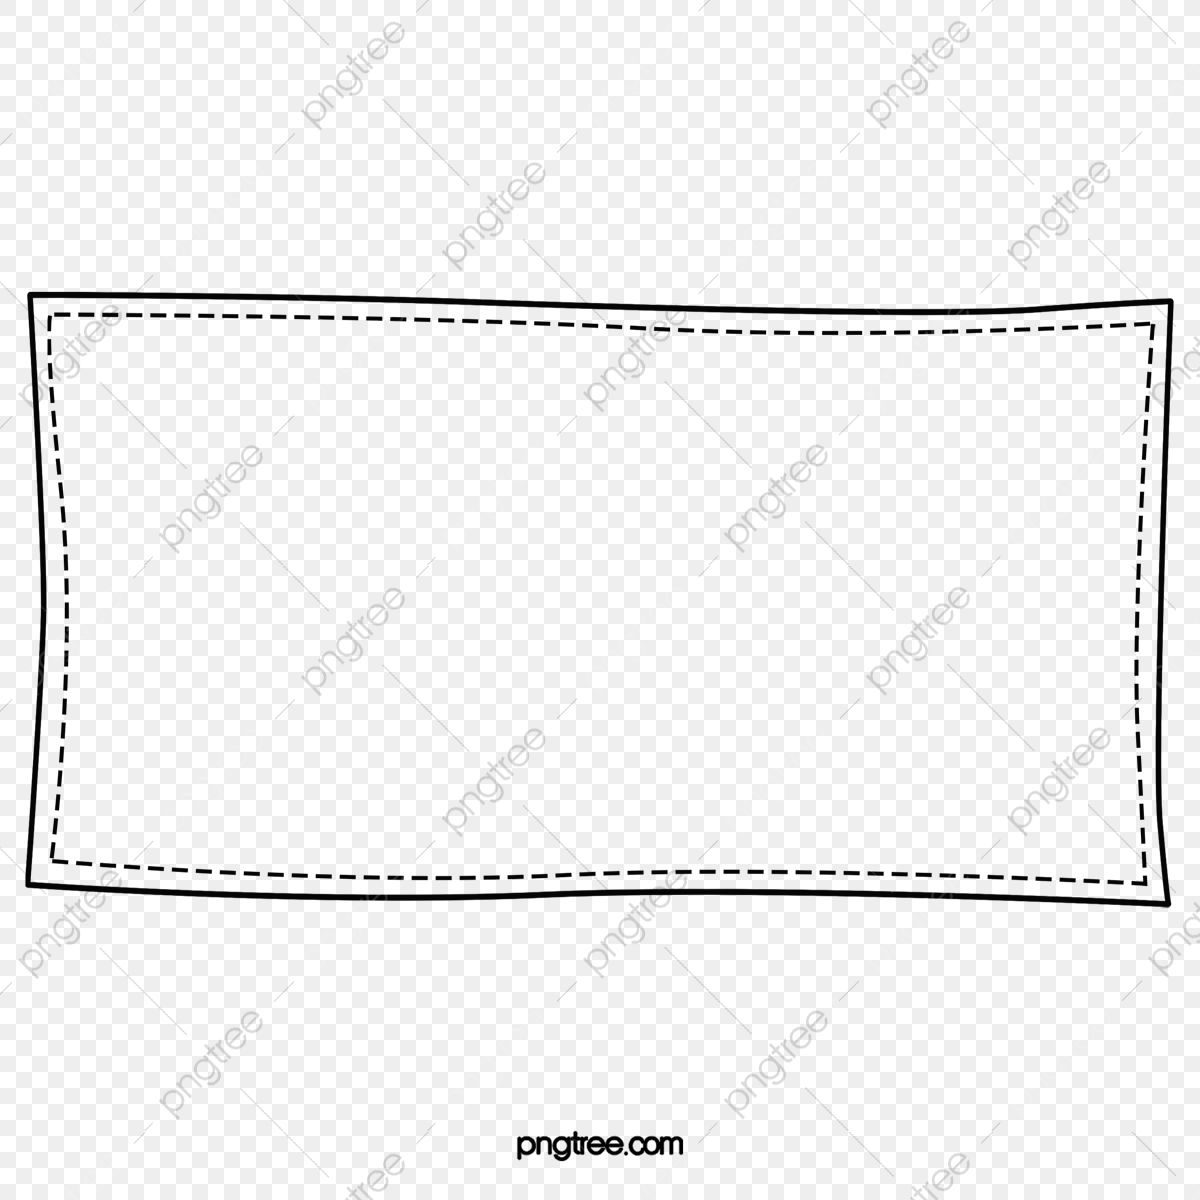 Ted Line Solid Line Text Border Text Border Png Transparent Clipart Image And Psd File For Free Download Text Borders Solid Line Hello Kitty Coloring